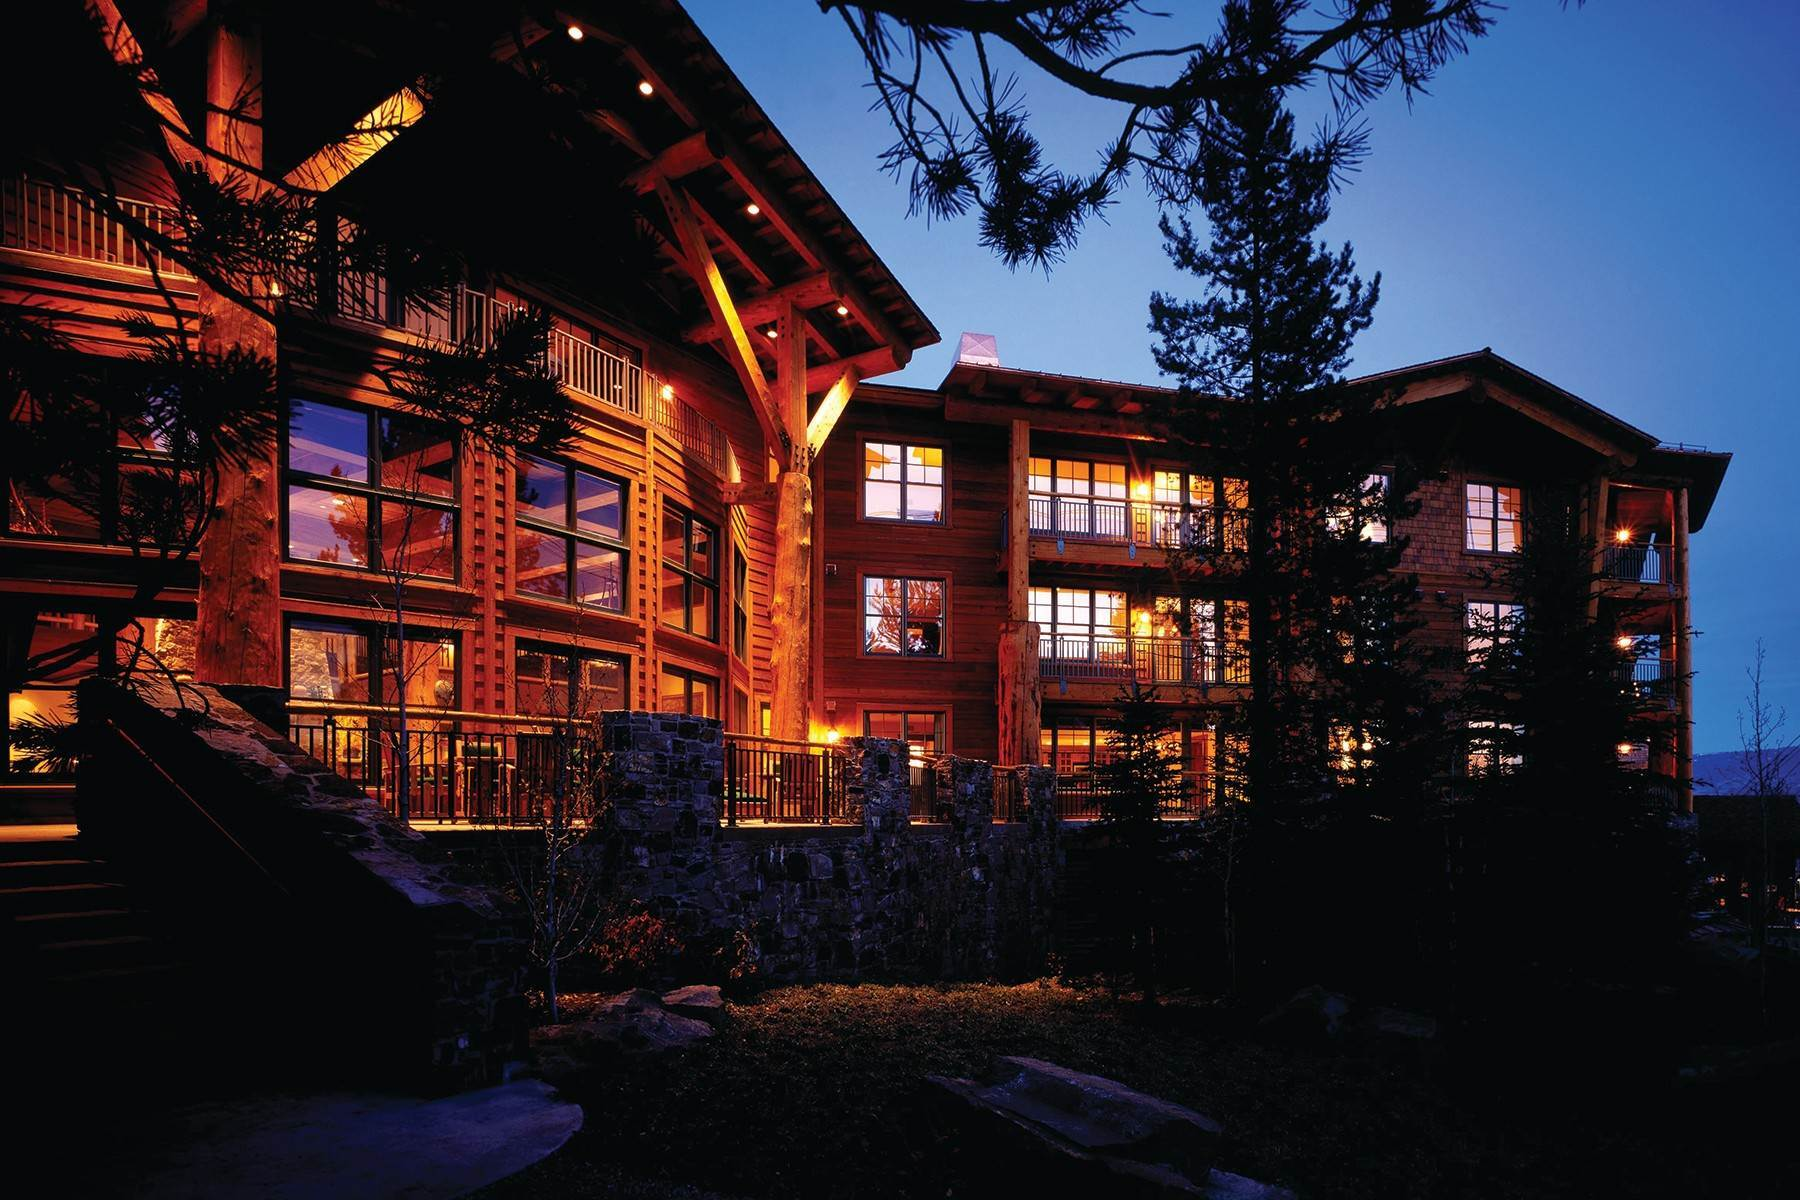 fractional ownership prop for Sale at 3340 W Cody Ln, #211 Teton Village, Wyoming 83025 United States